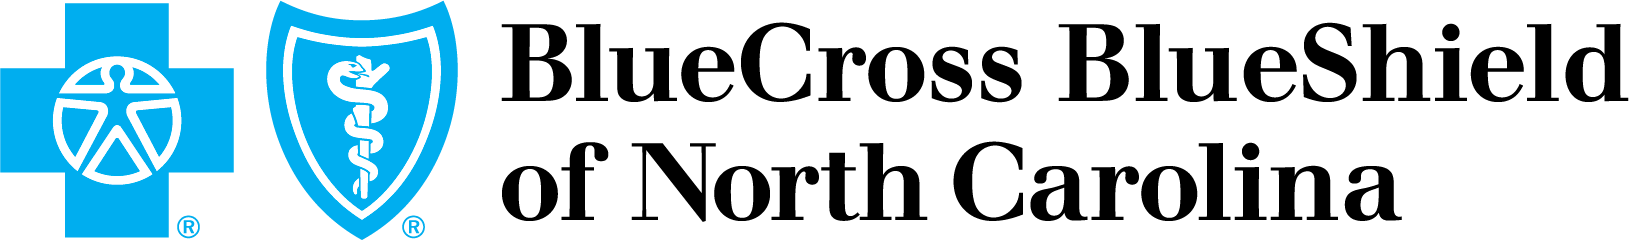 Blue Cross Blue Shield <br>of North Carolina <br> Opening Ceremony Sponsor